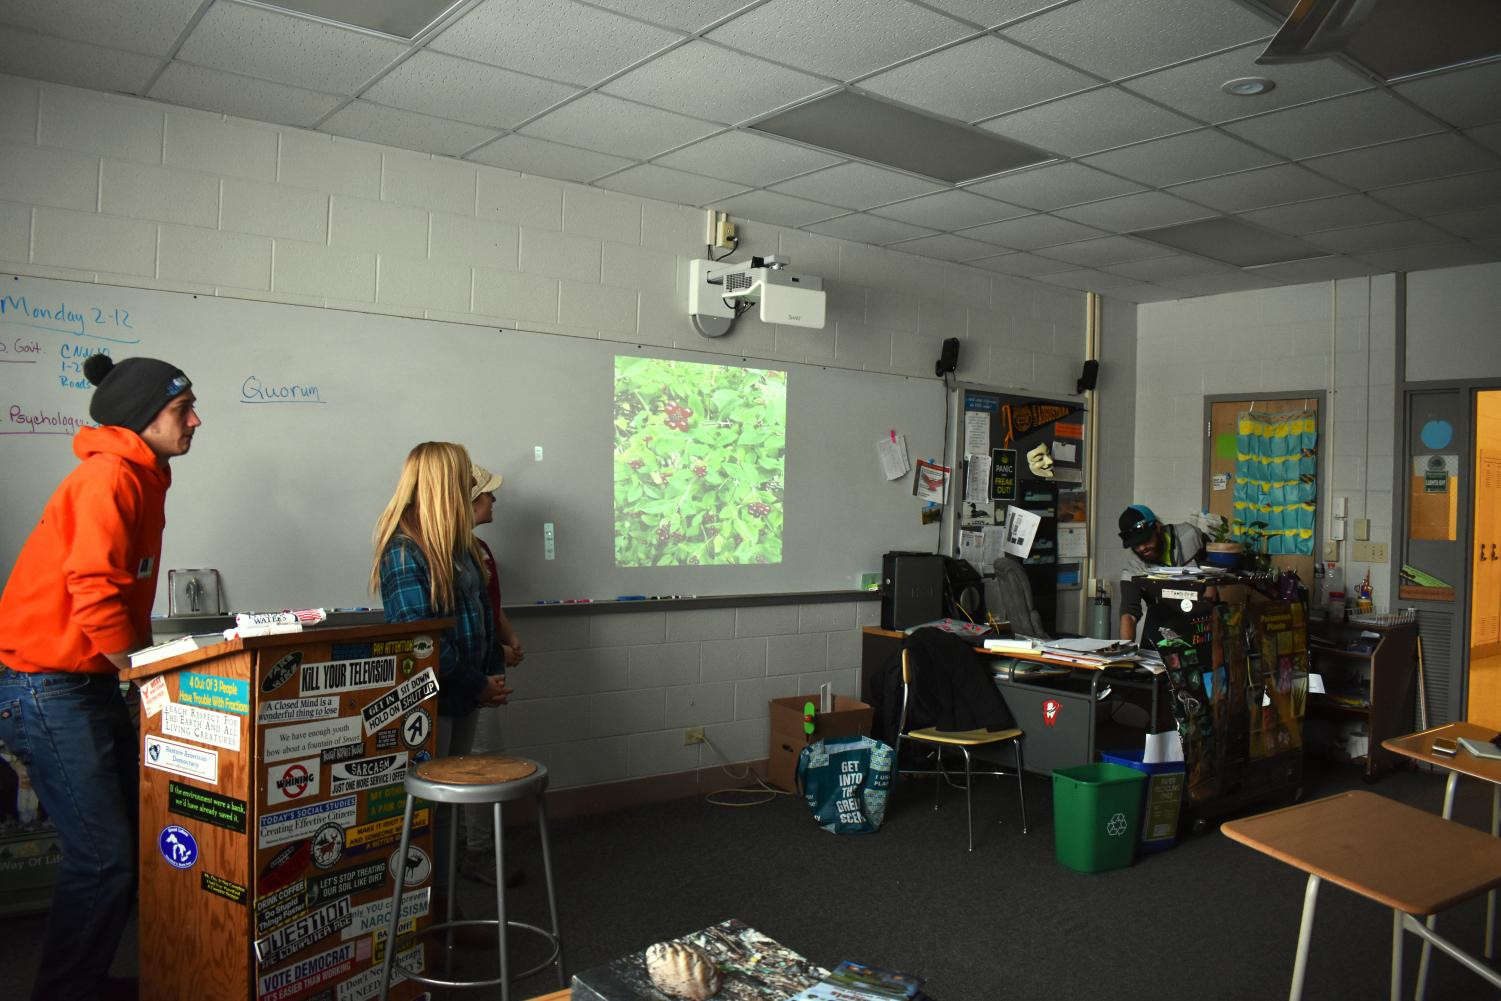 Living Lands and Waters speaking to the Ecology club on Monday, February 12th in room 207.